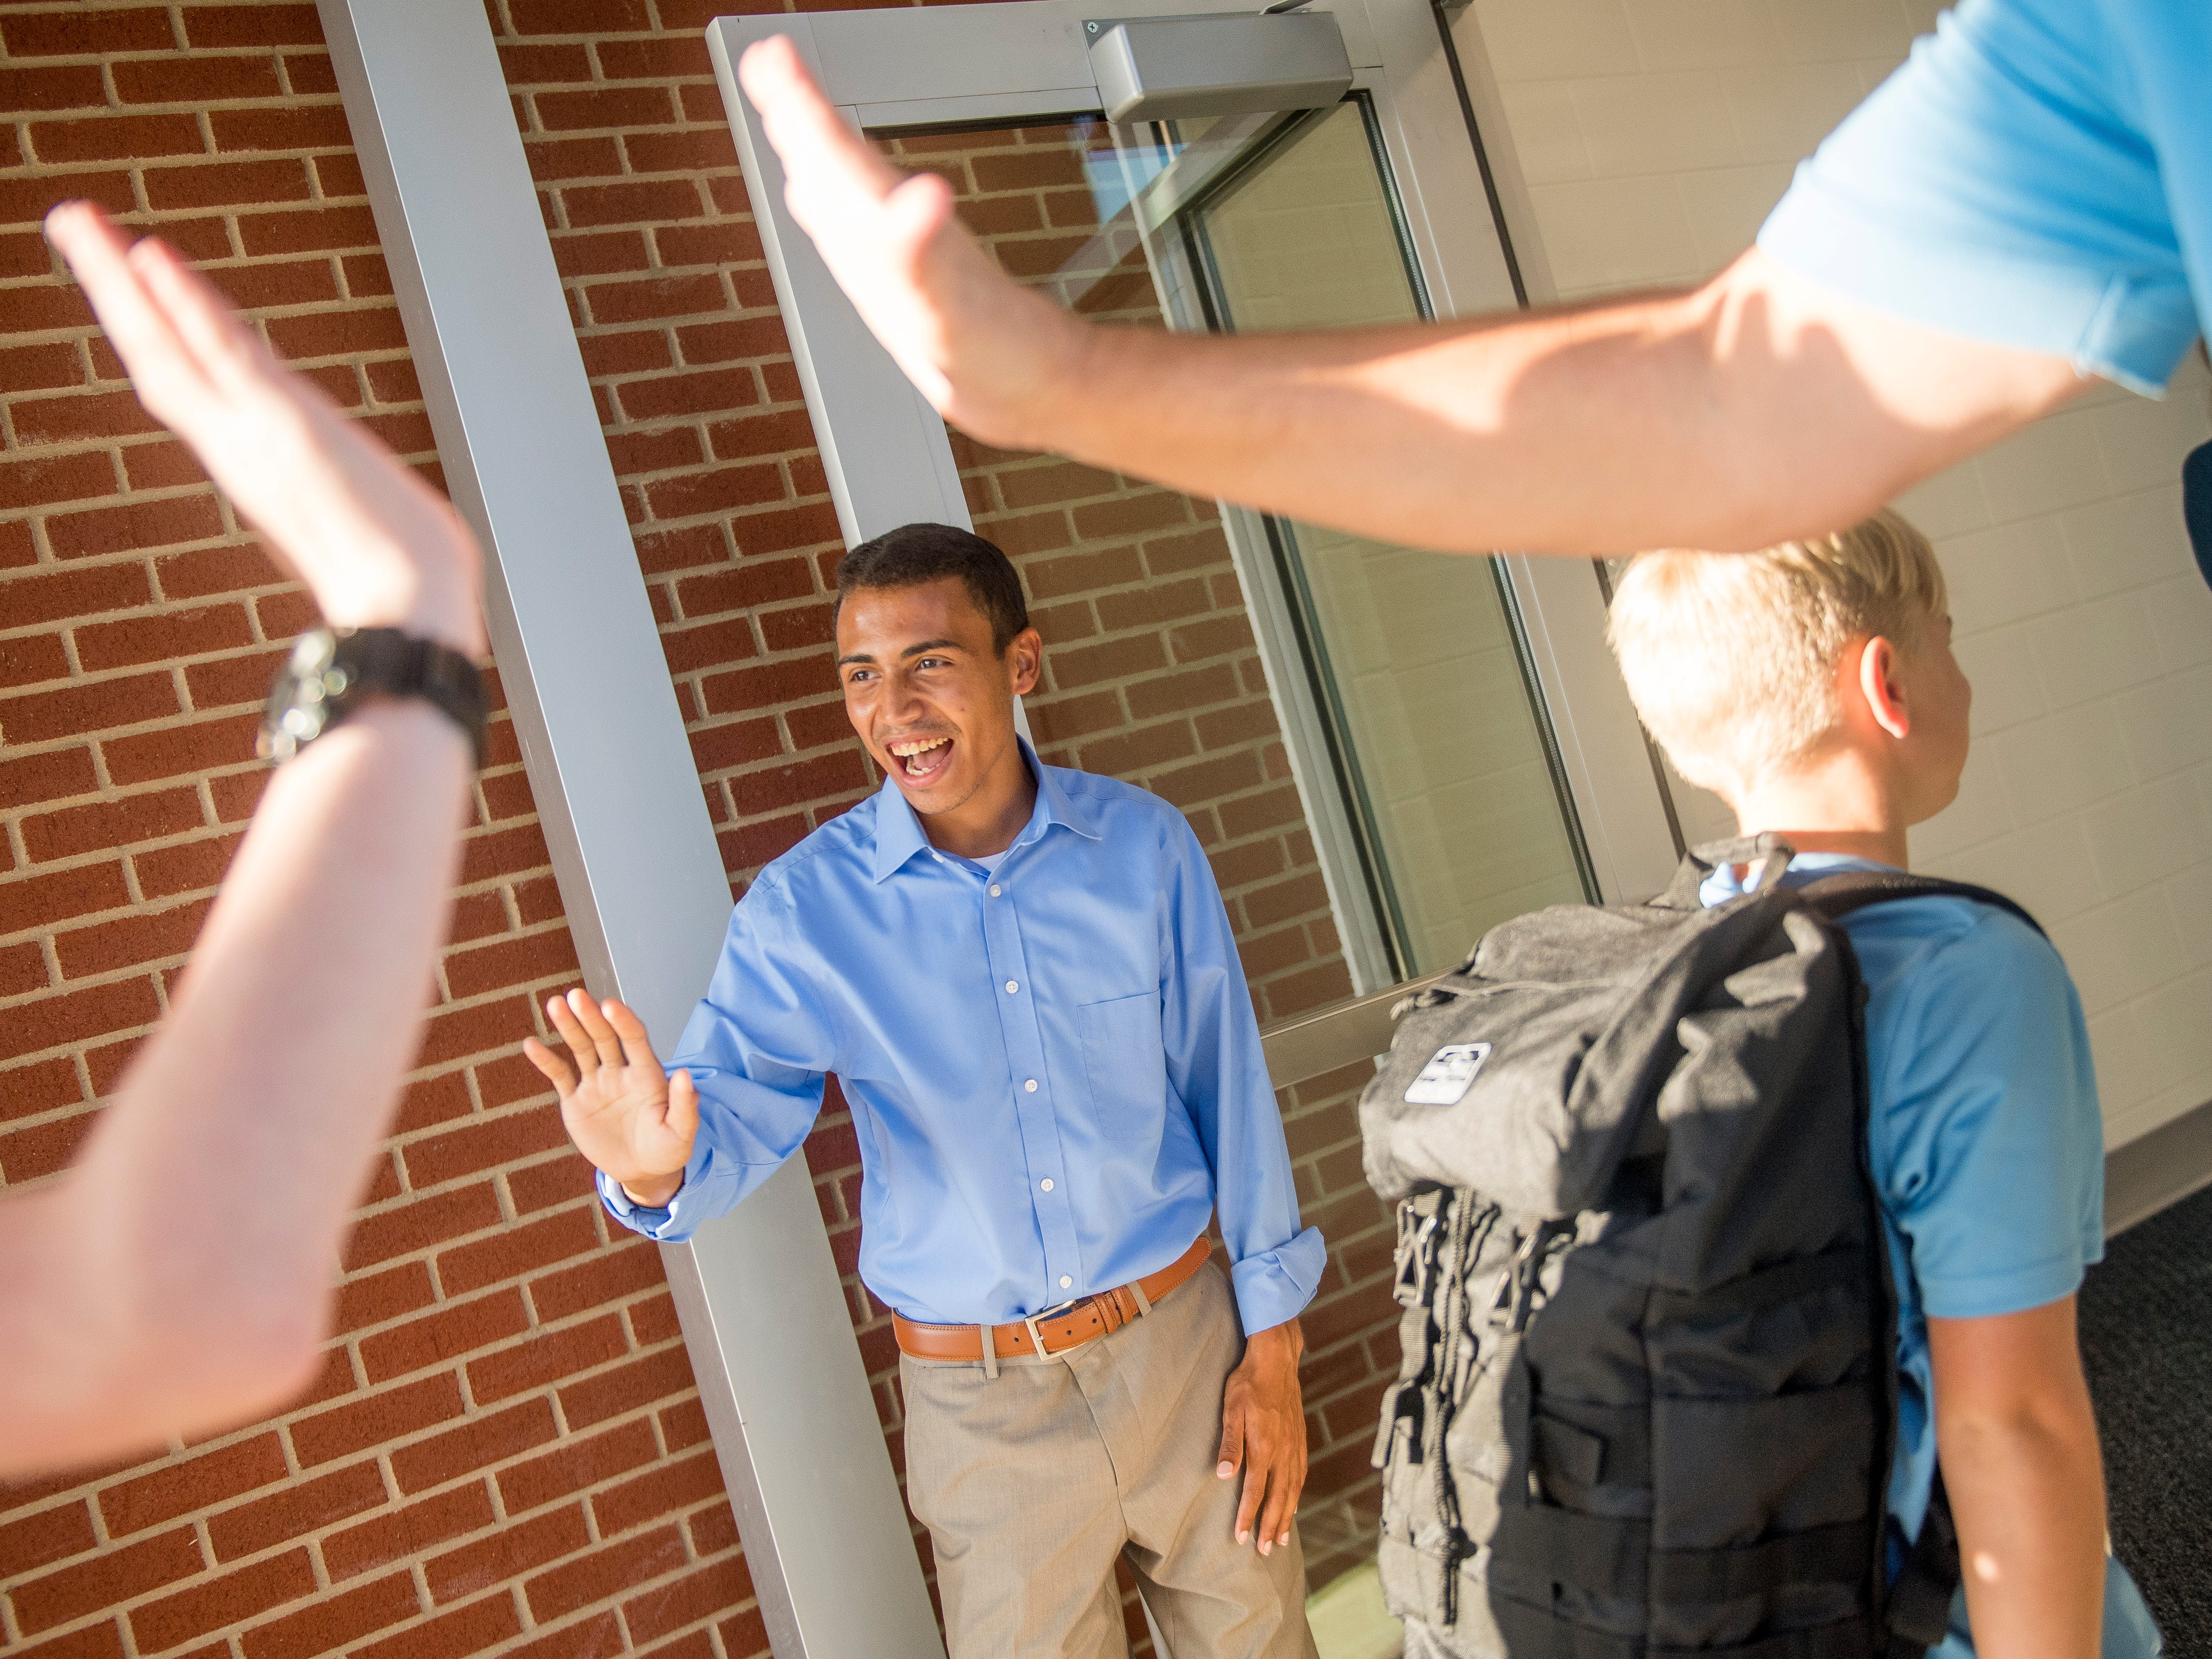 Seth Majors, center, smiles as he greets students with a high five as they step off the bus and enter the new Gibbs Middle School for the first day of school on Wednesday, August 8, 2018.